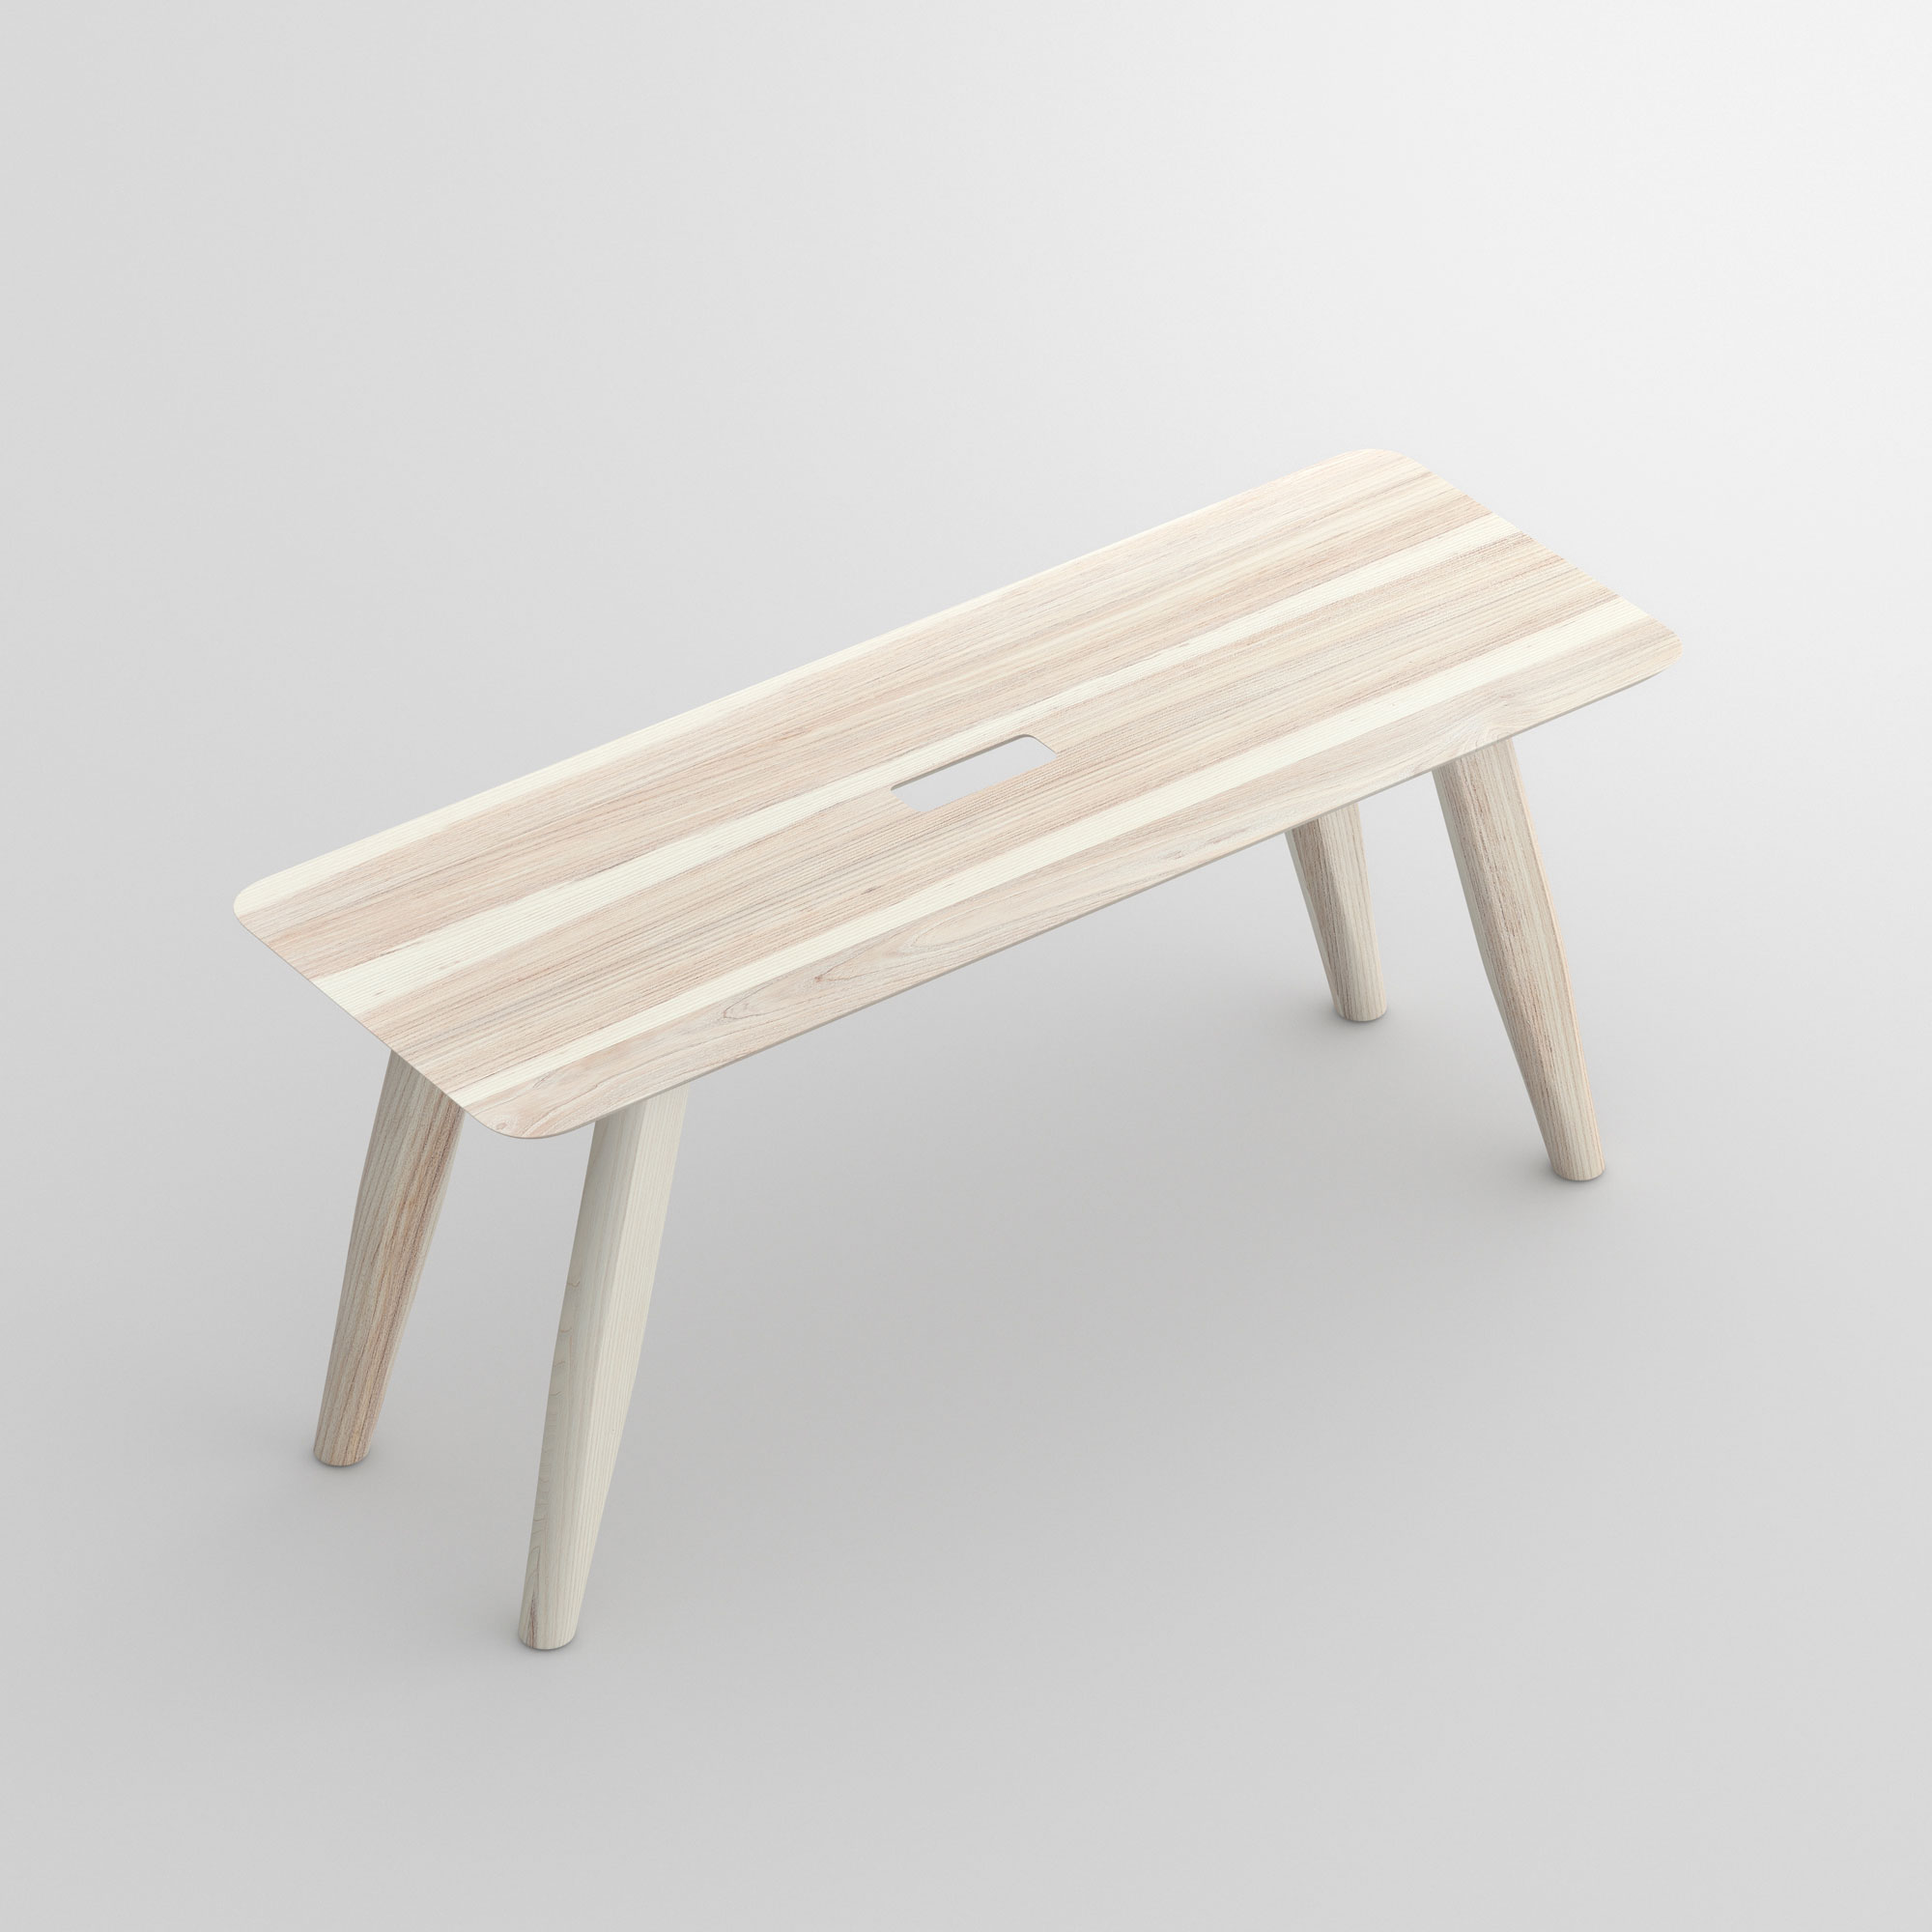 Designer Bench AETAS cam1 custom made in solid wood by vitamin design